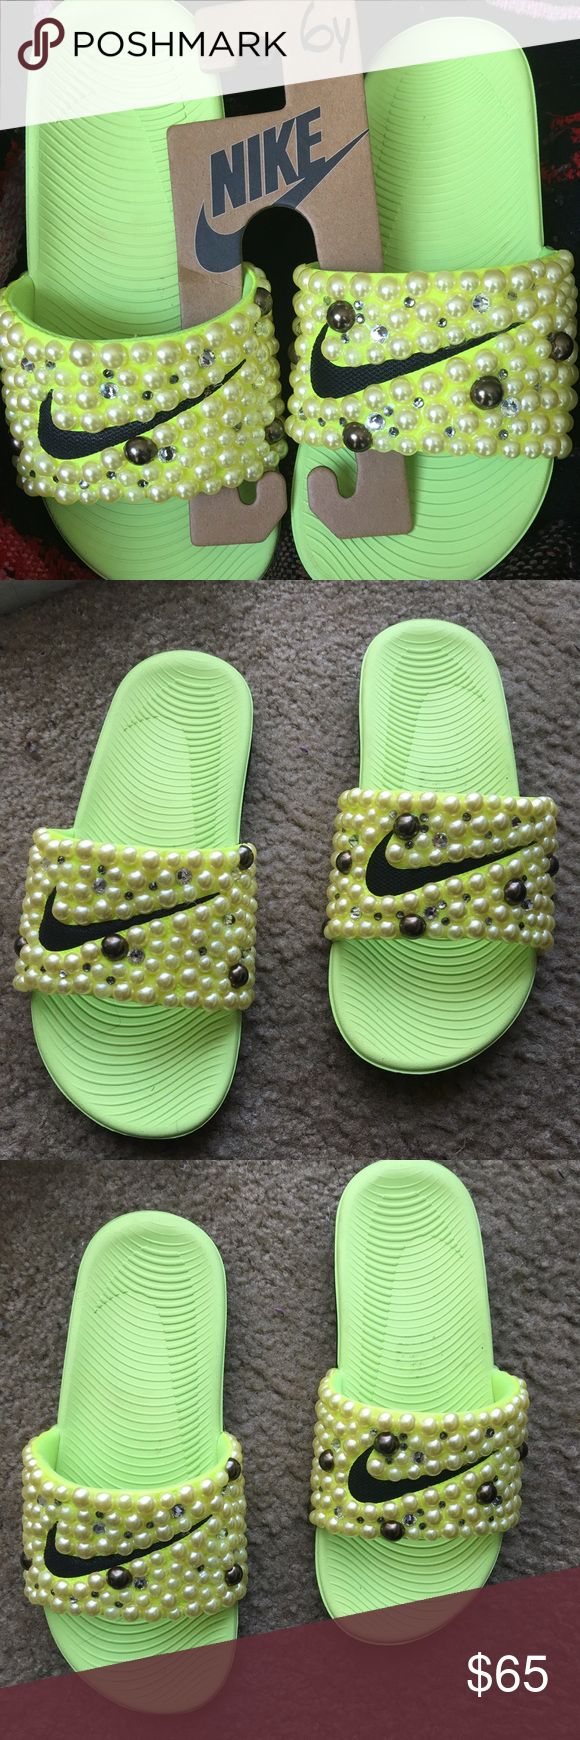 Bee Hive custom Nike slides 2016 Nike slides 2016 custom made with embellished pearl like stones with Swarovski crystals to give them a bling affect. Great summer buy. Comfortable and Classy! Limited supply!!! Nike Shoes Sandals